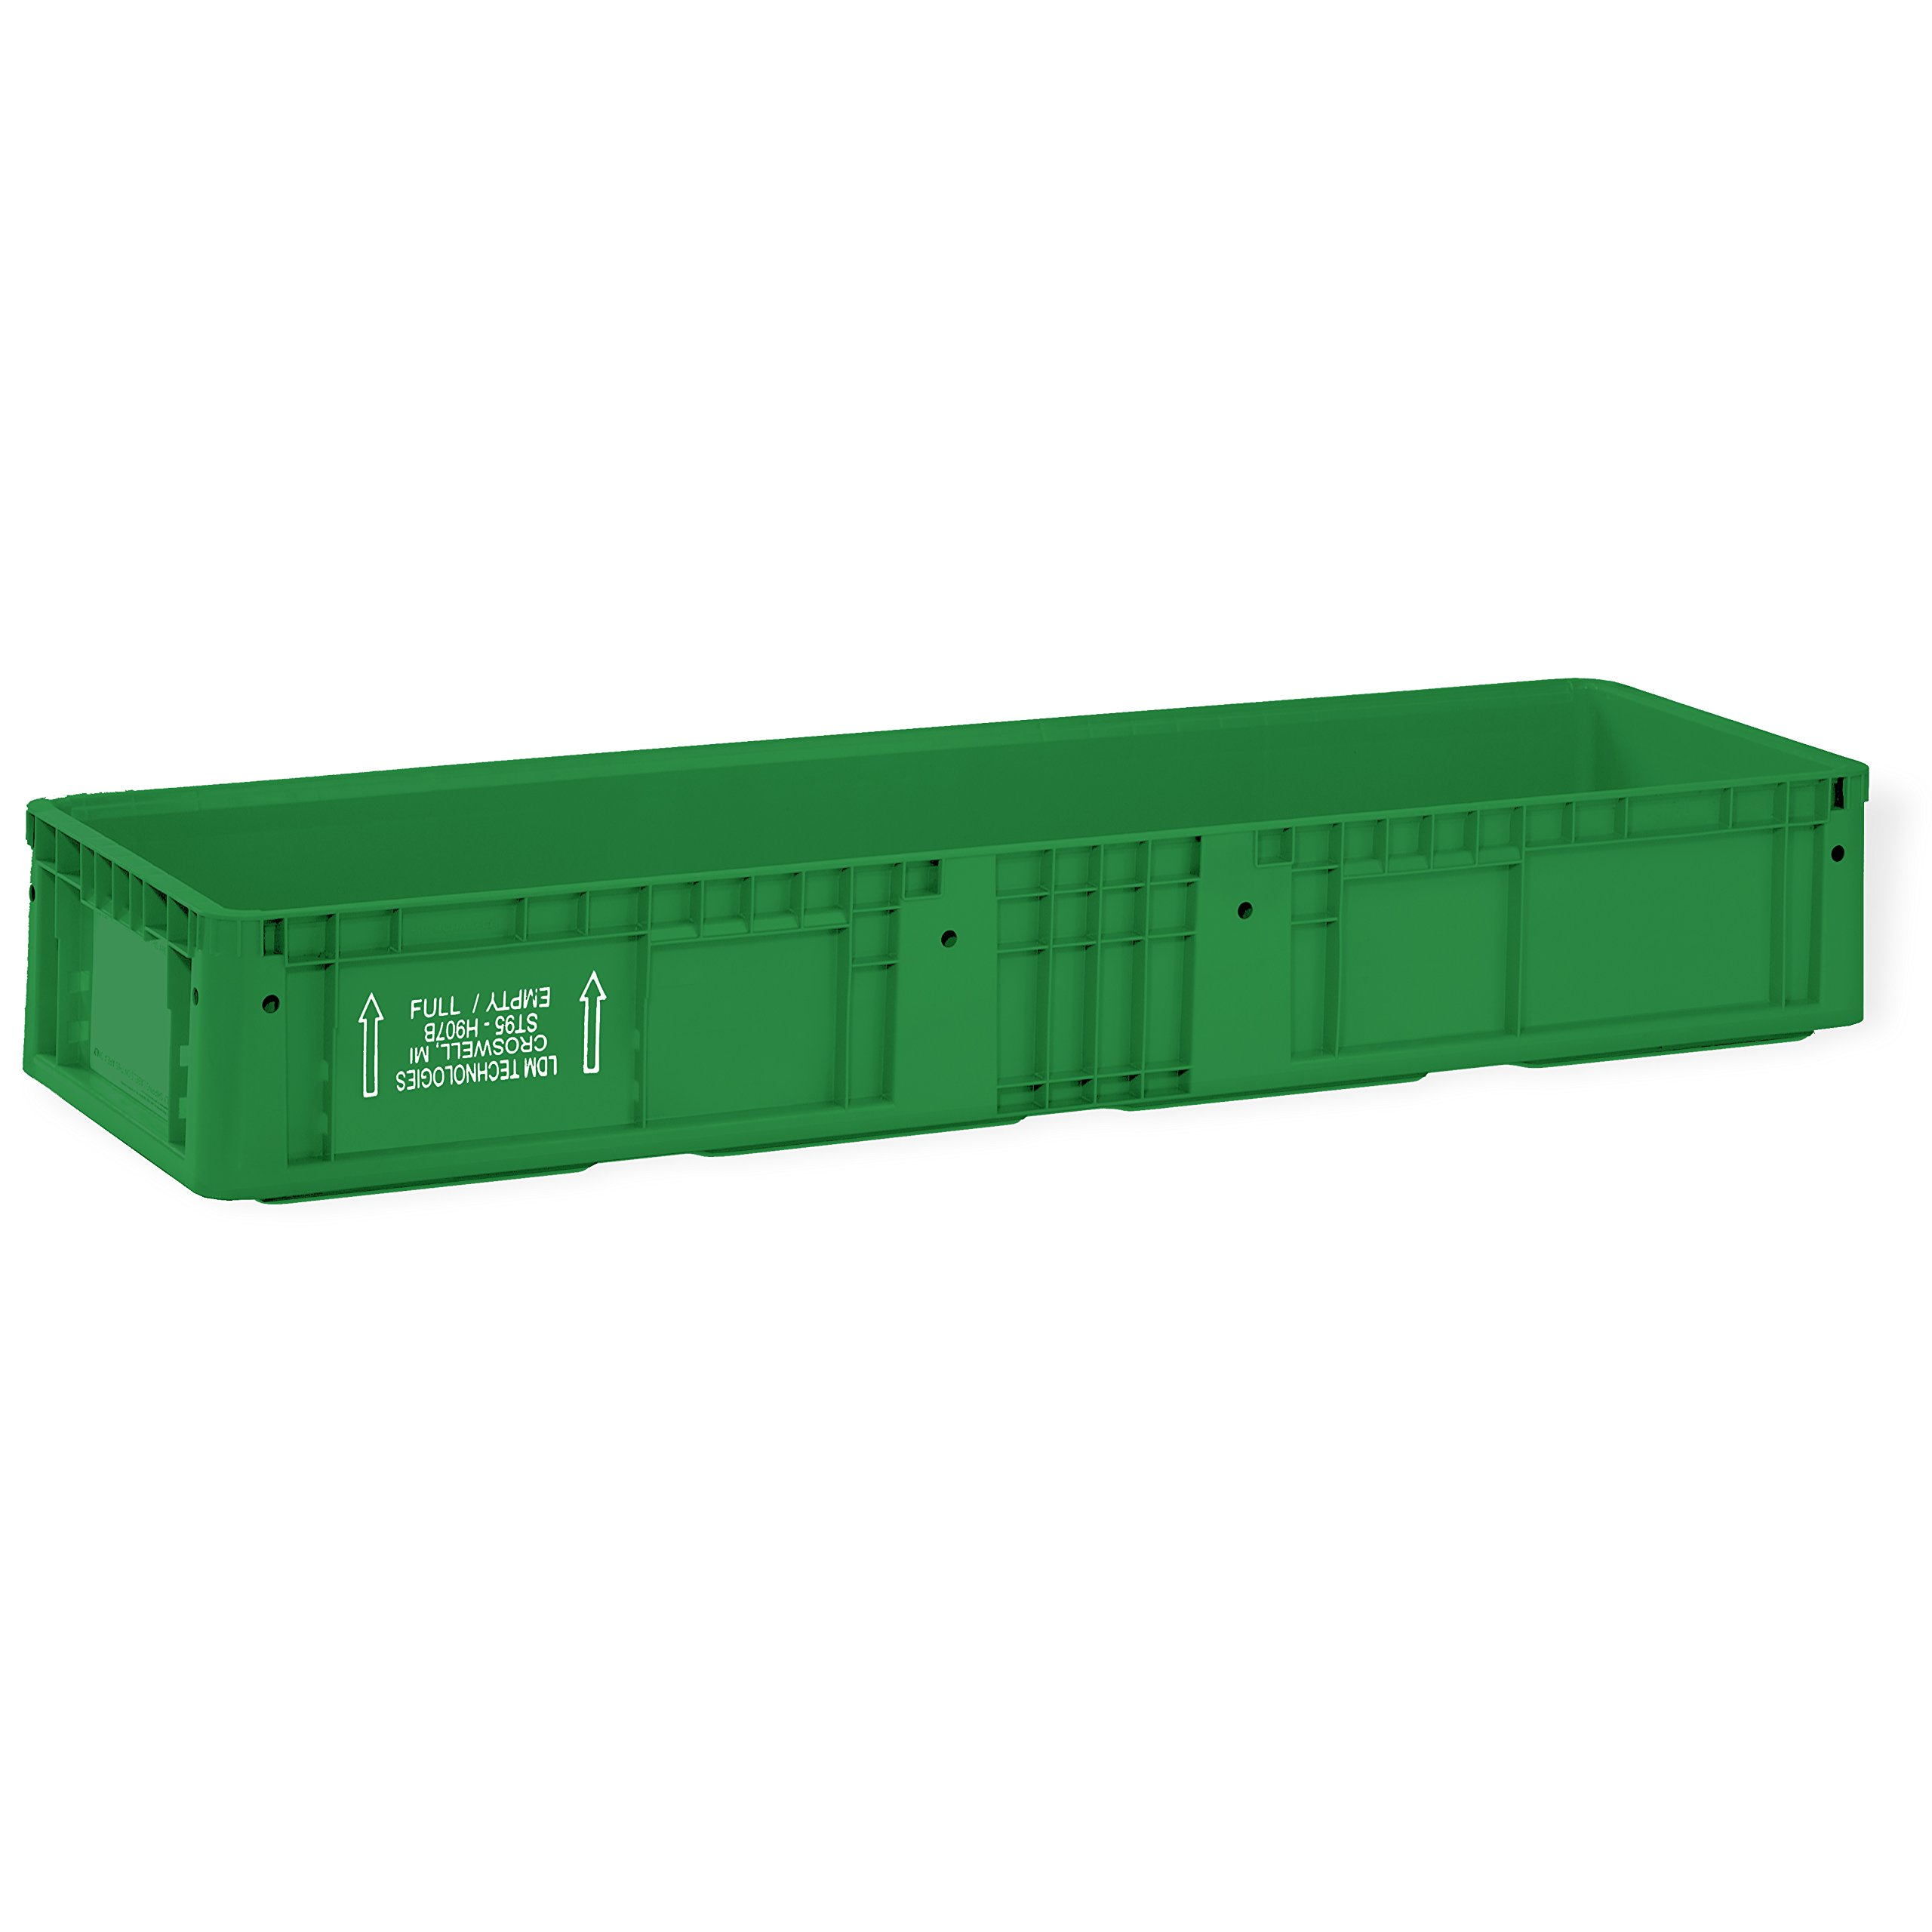 SSI SCHAEFER AF482207.AAGN1 Straight Wall Container, Polyethylene, Green, Capacity 44 lb, 48'' Length x 22'' Width x 7.5'' Height